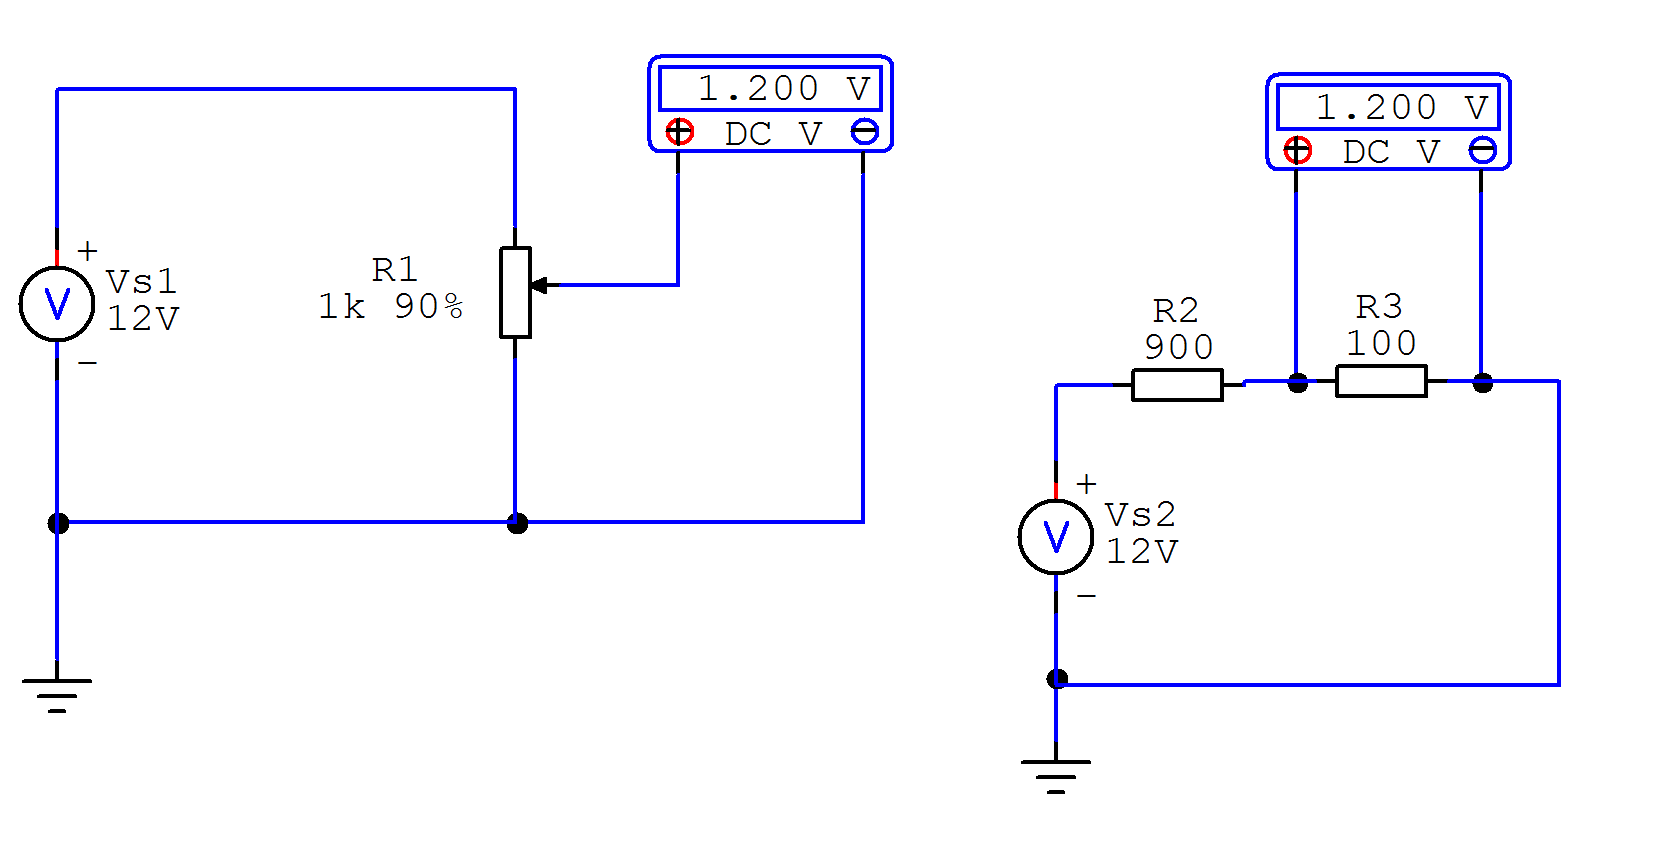 hight resolution of solved eagle 8 5 2 potentiometer simulation does not work displaying 17 gallery images for potentiometer schematic symbol